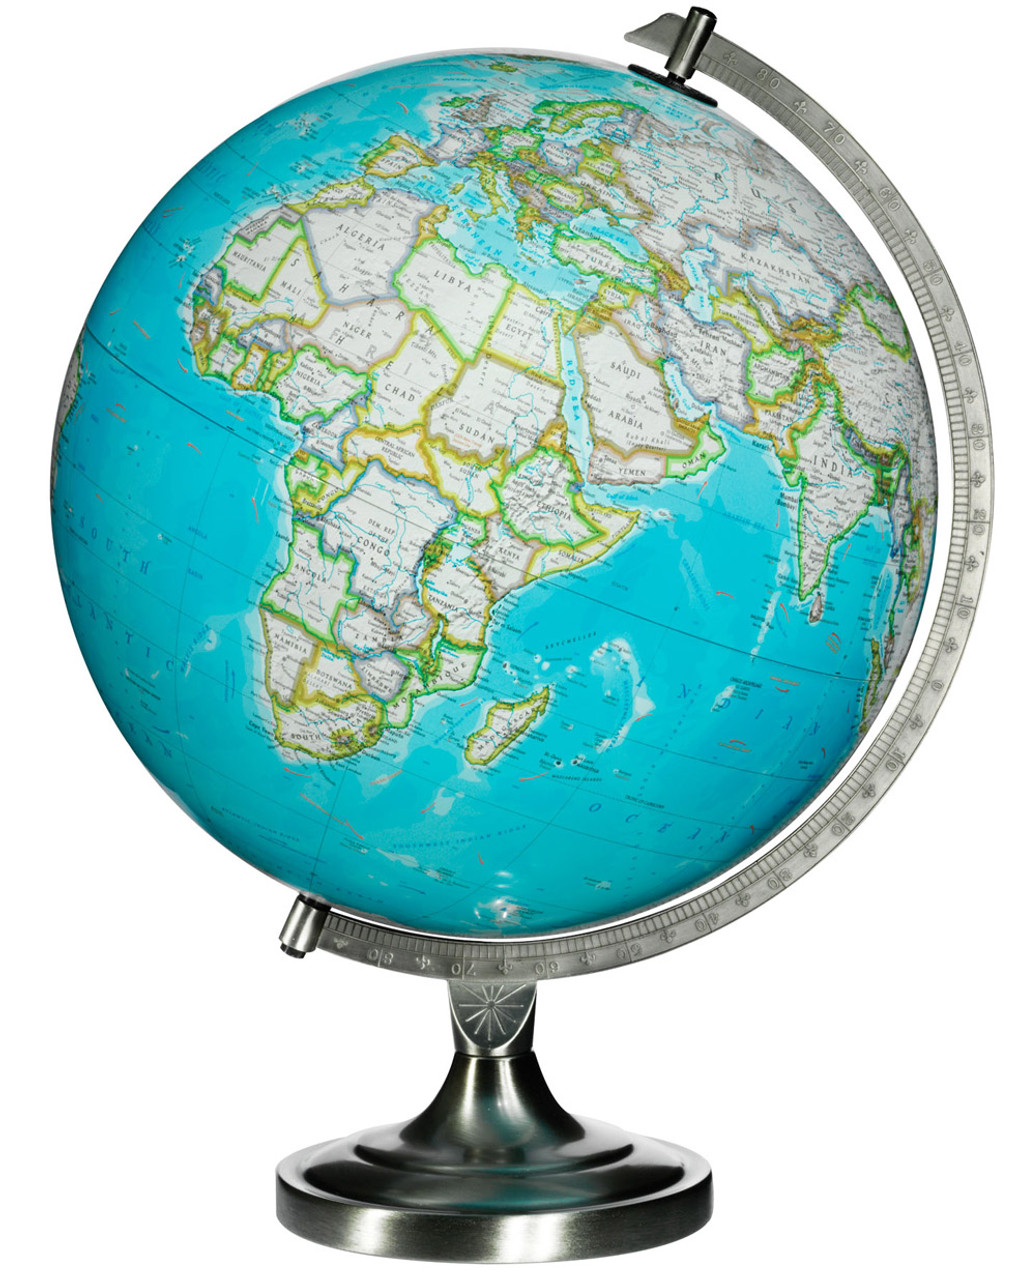 The Bowers 12 Illuminated Desk Globe From National Geographic